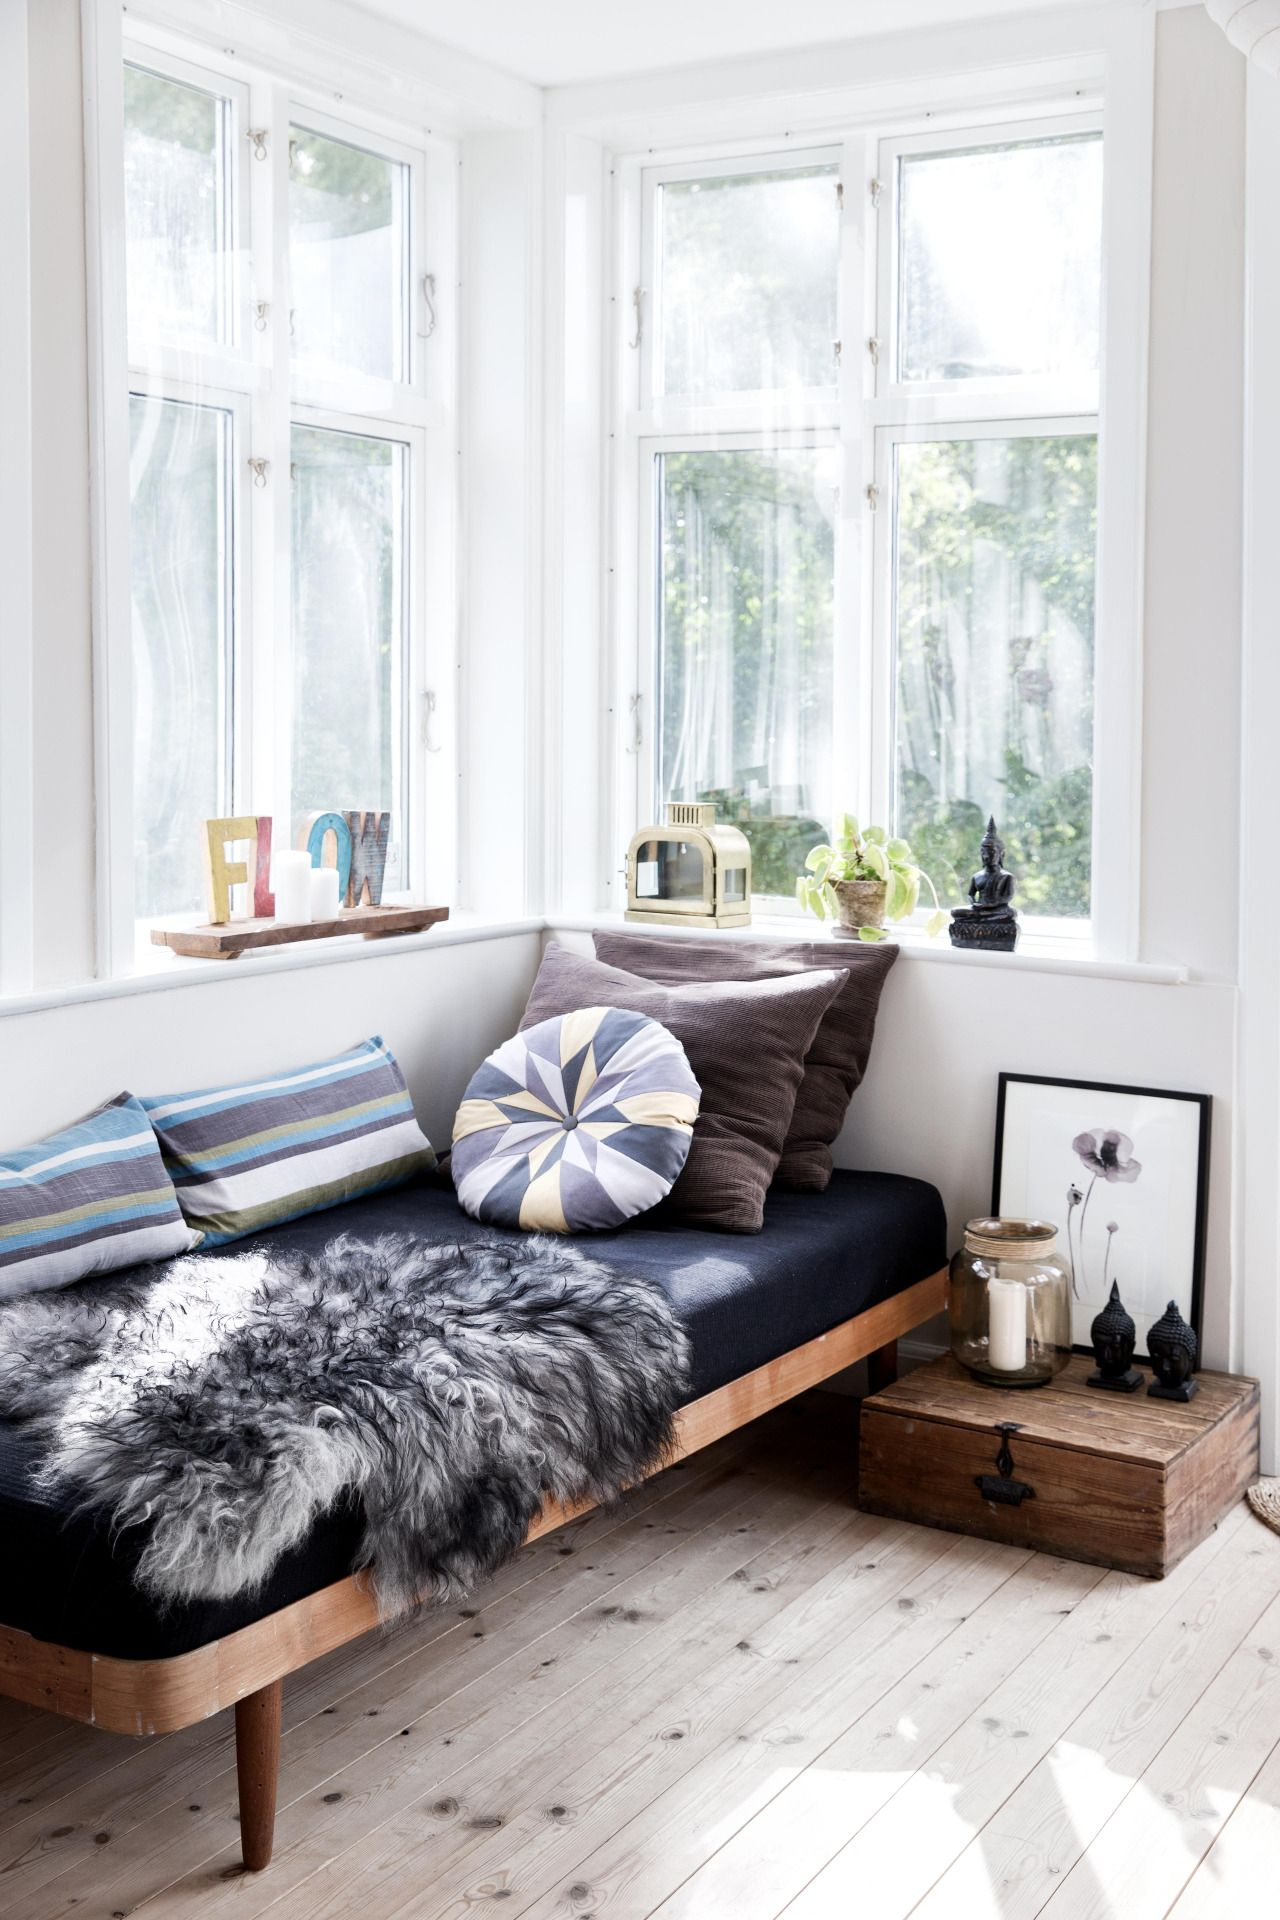 12 Daybed Ideas We\'re Daydreaming About - http://freshome.com/daybed ...